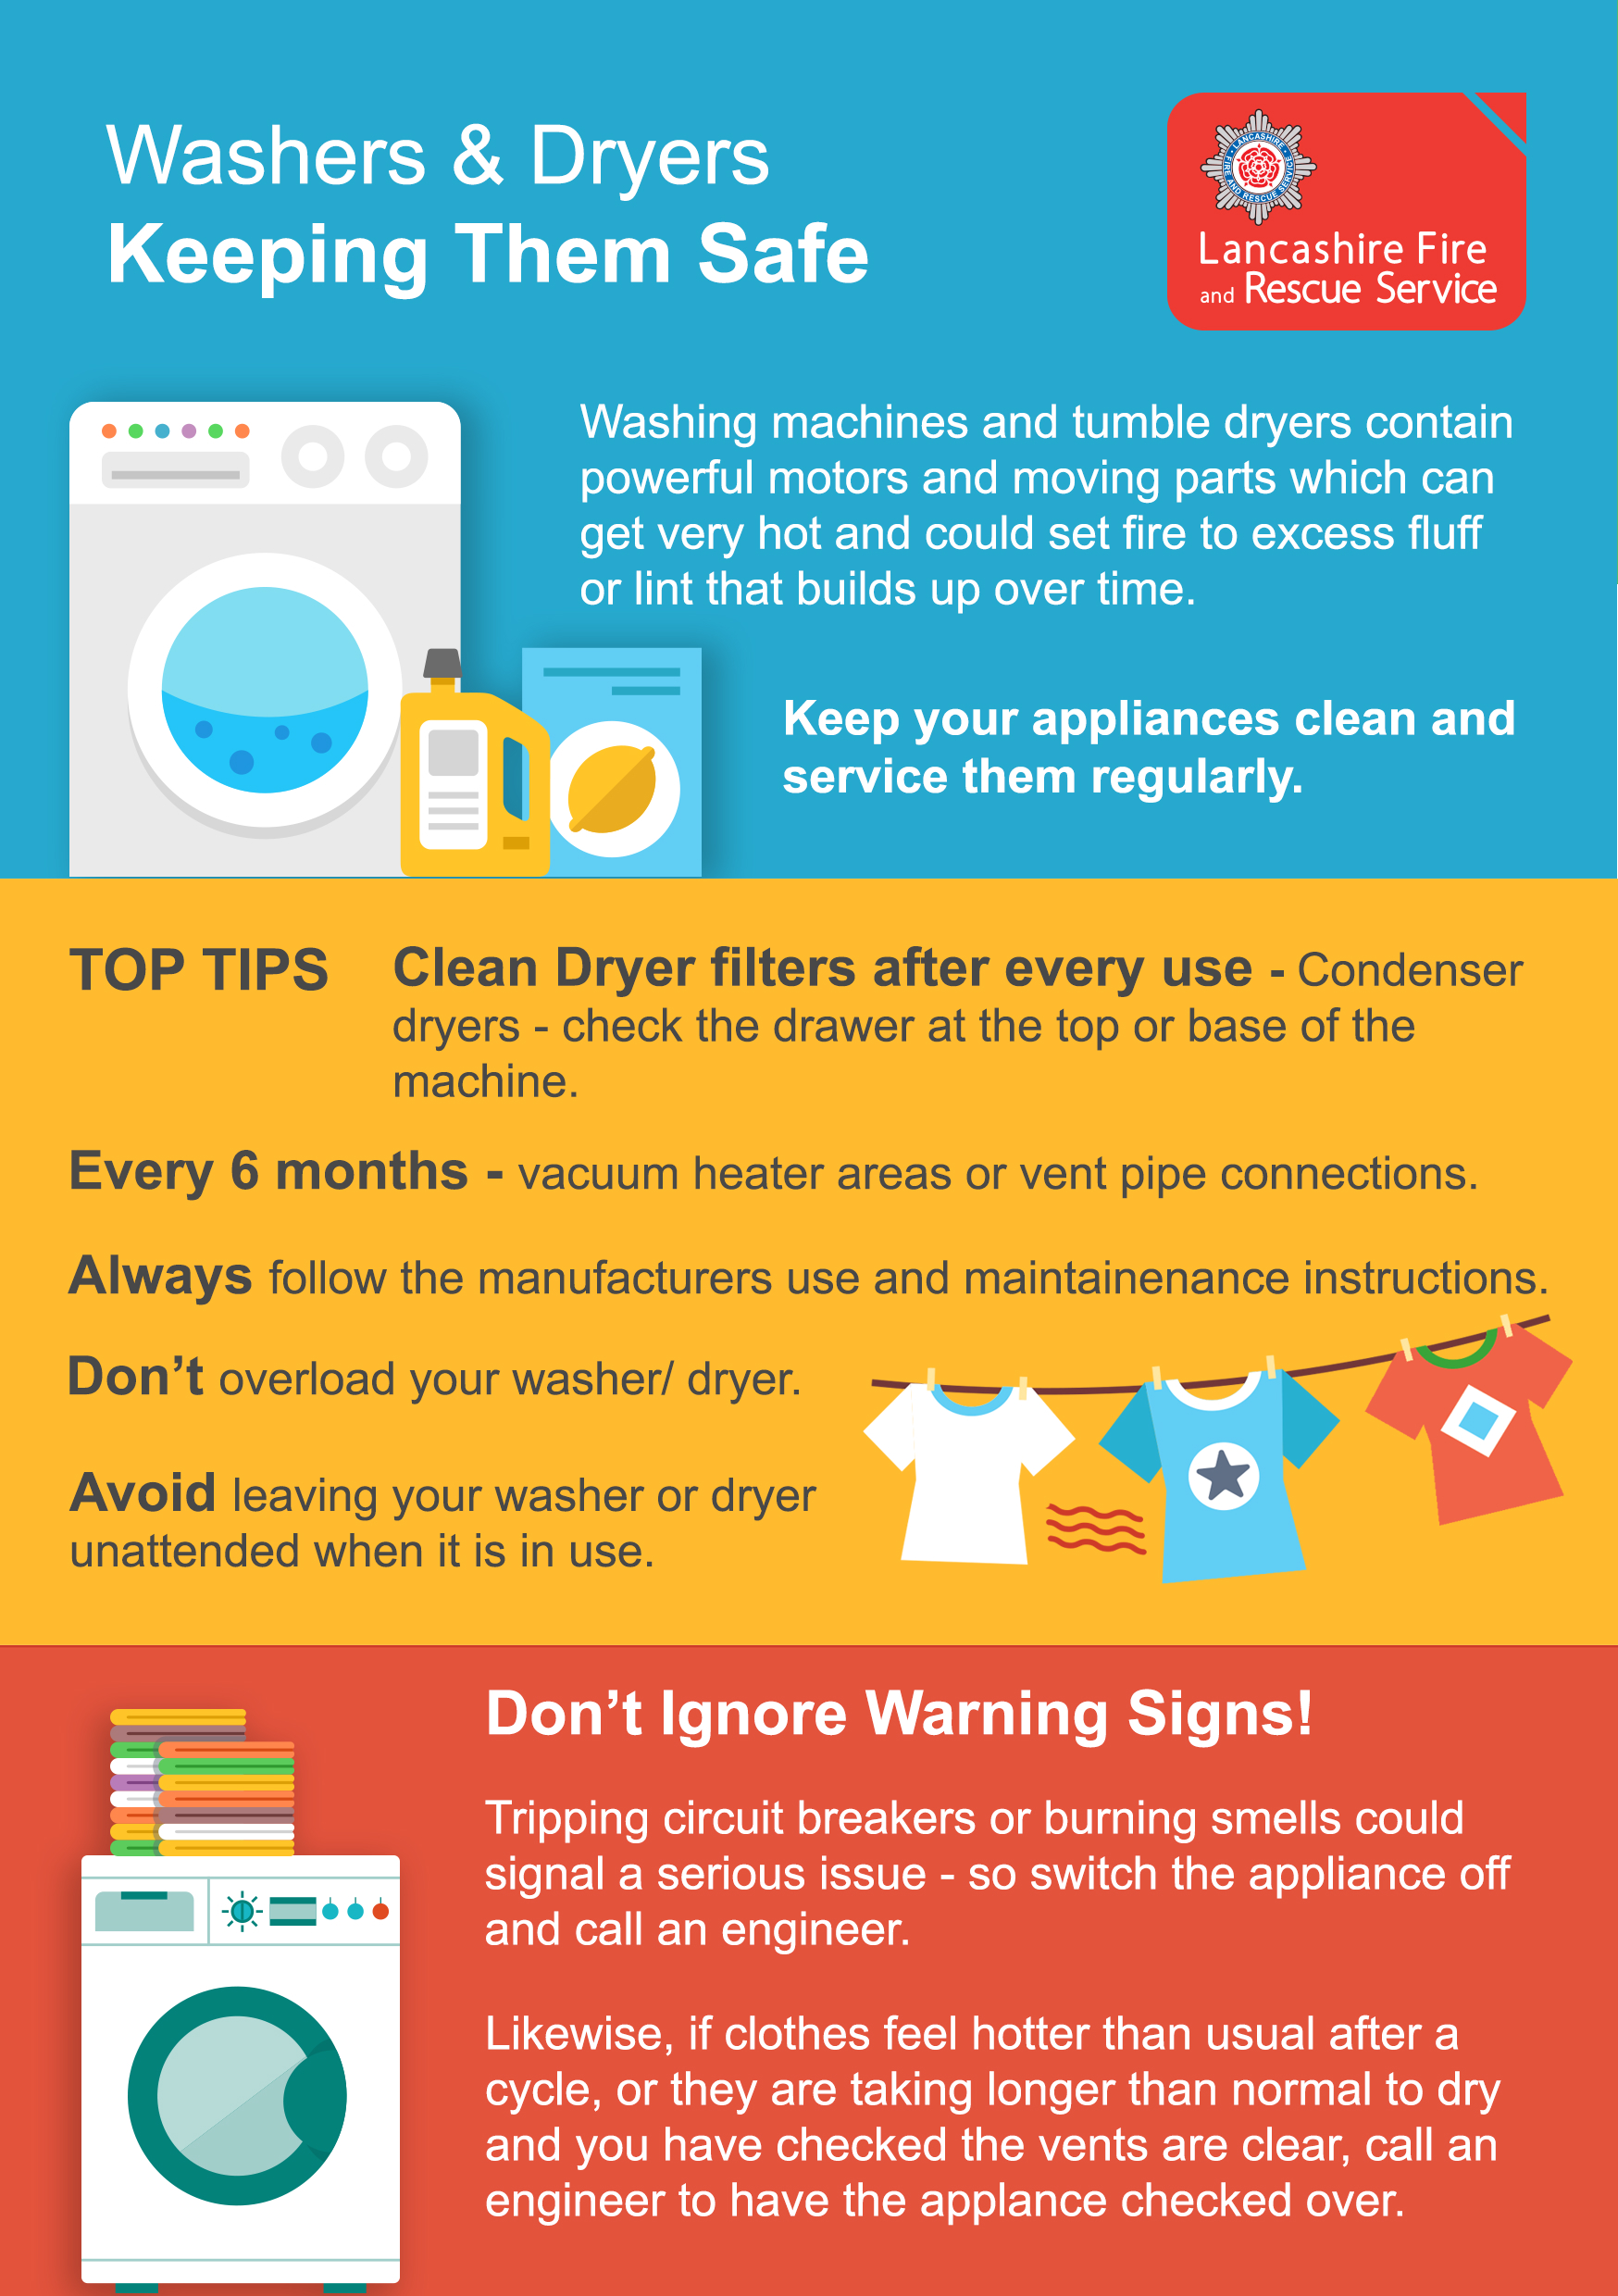 Dryer and washer leaflet image